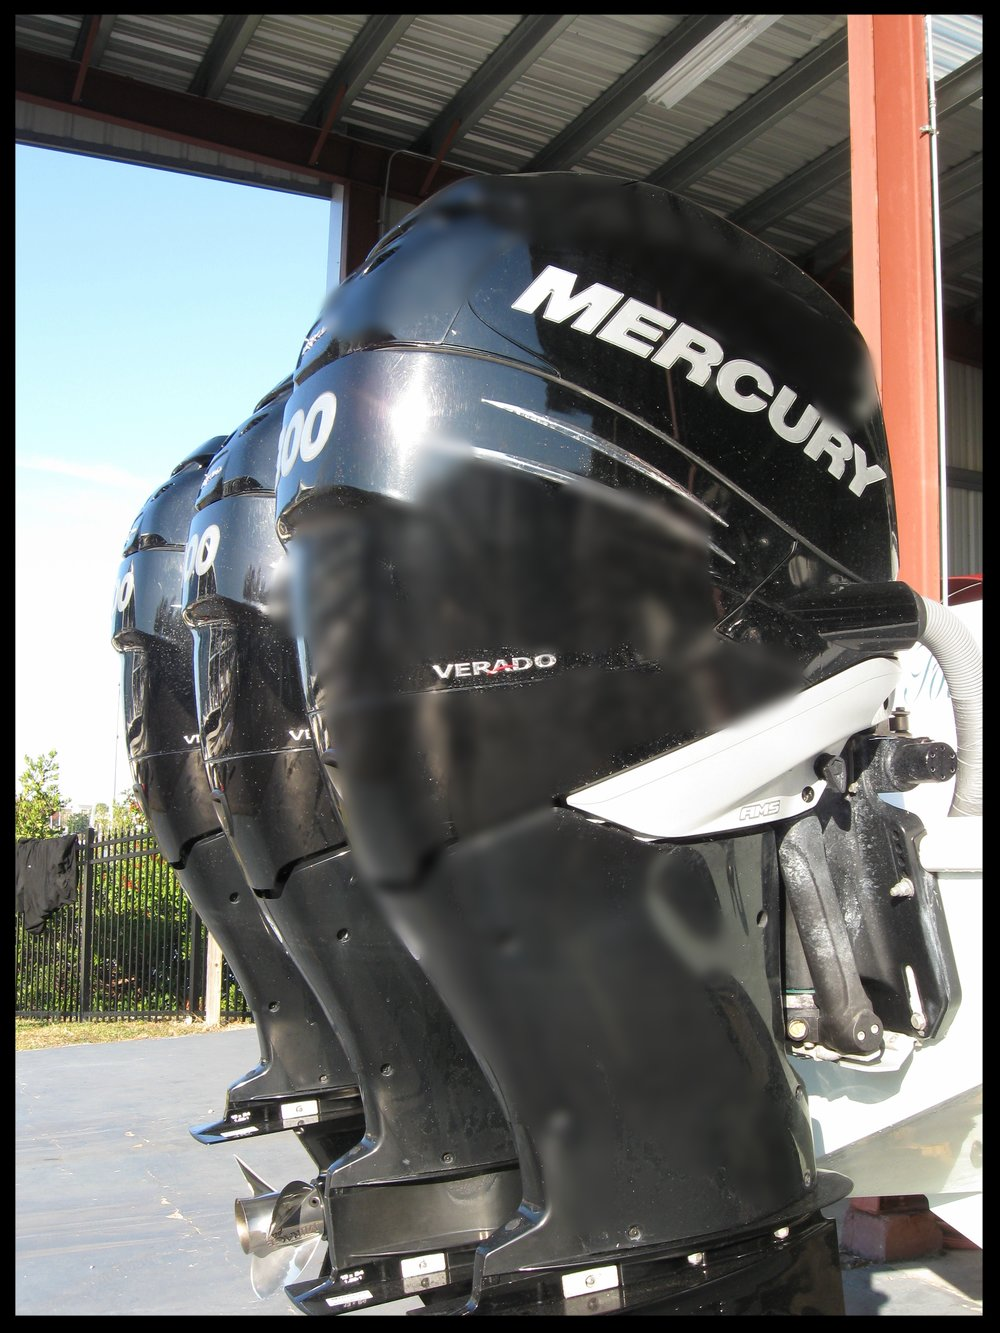 Parts & Service - 20 plus years experienceCertified master techniciansFactory authorized MerCruiser/Volvo technicians, also serving all other major brandsUse of all OEM partsAuthorized Mercury - MerCruiser Service Center on the water.  Intercoastal Waterway at Indian Rocks - Green marker #37